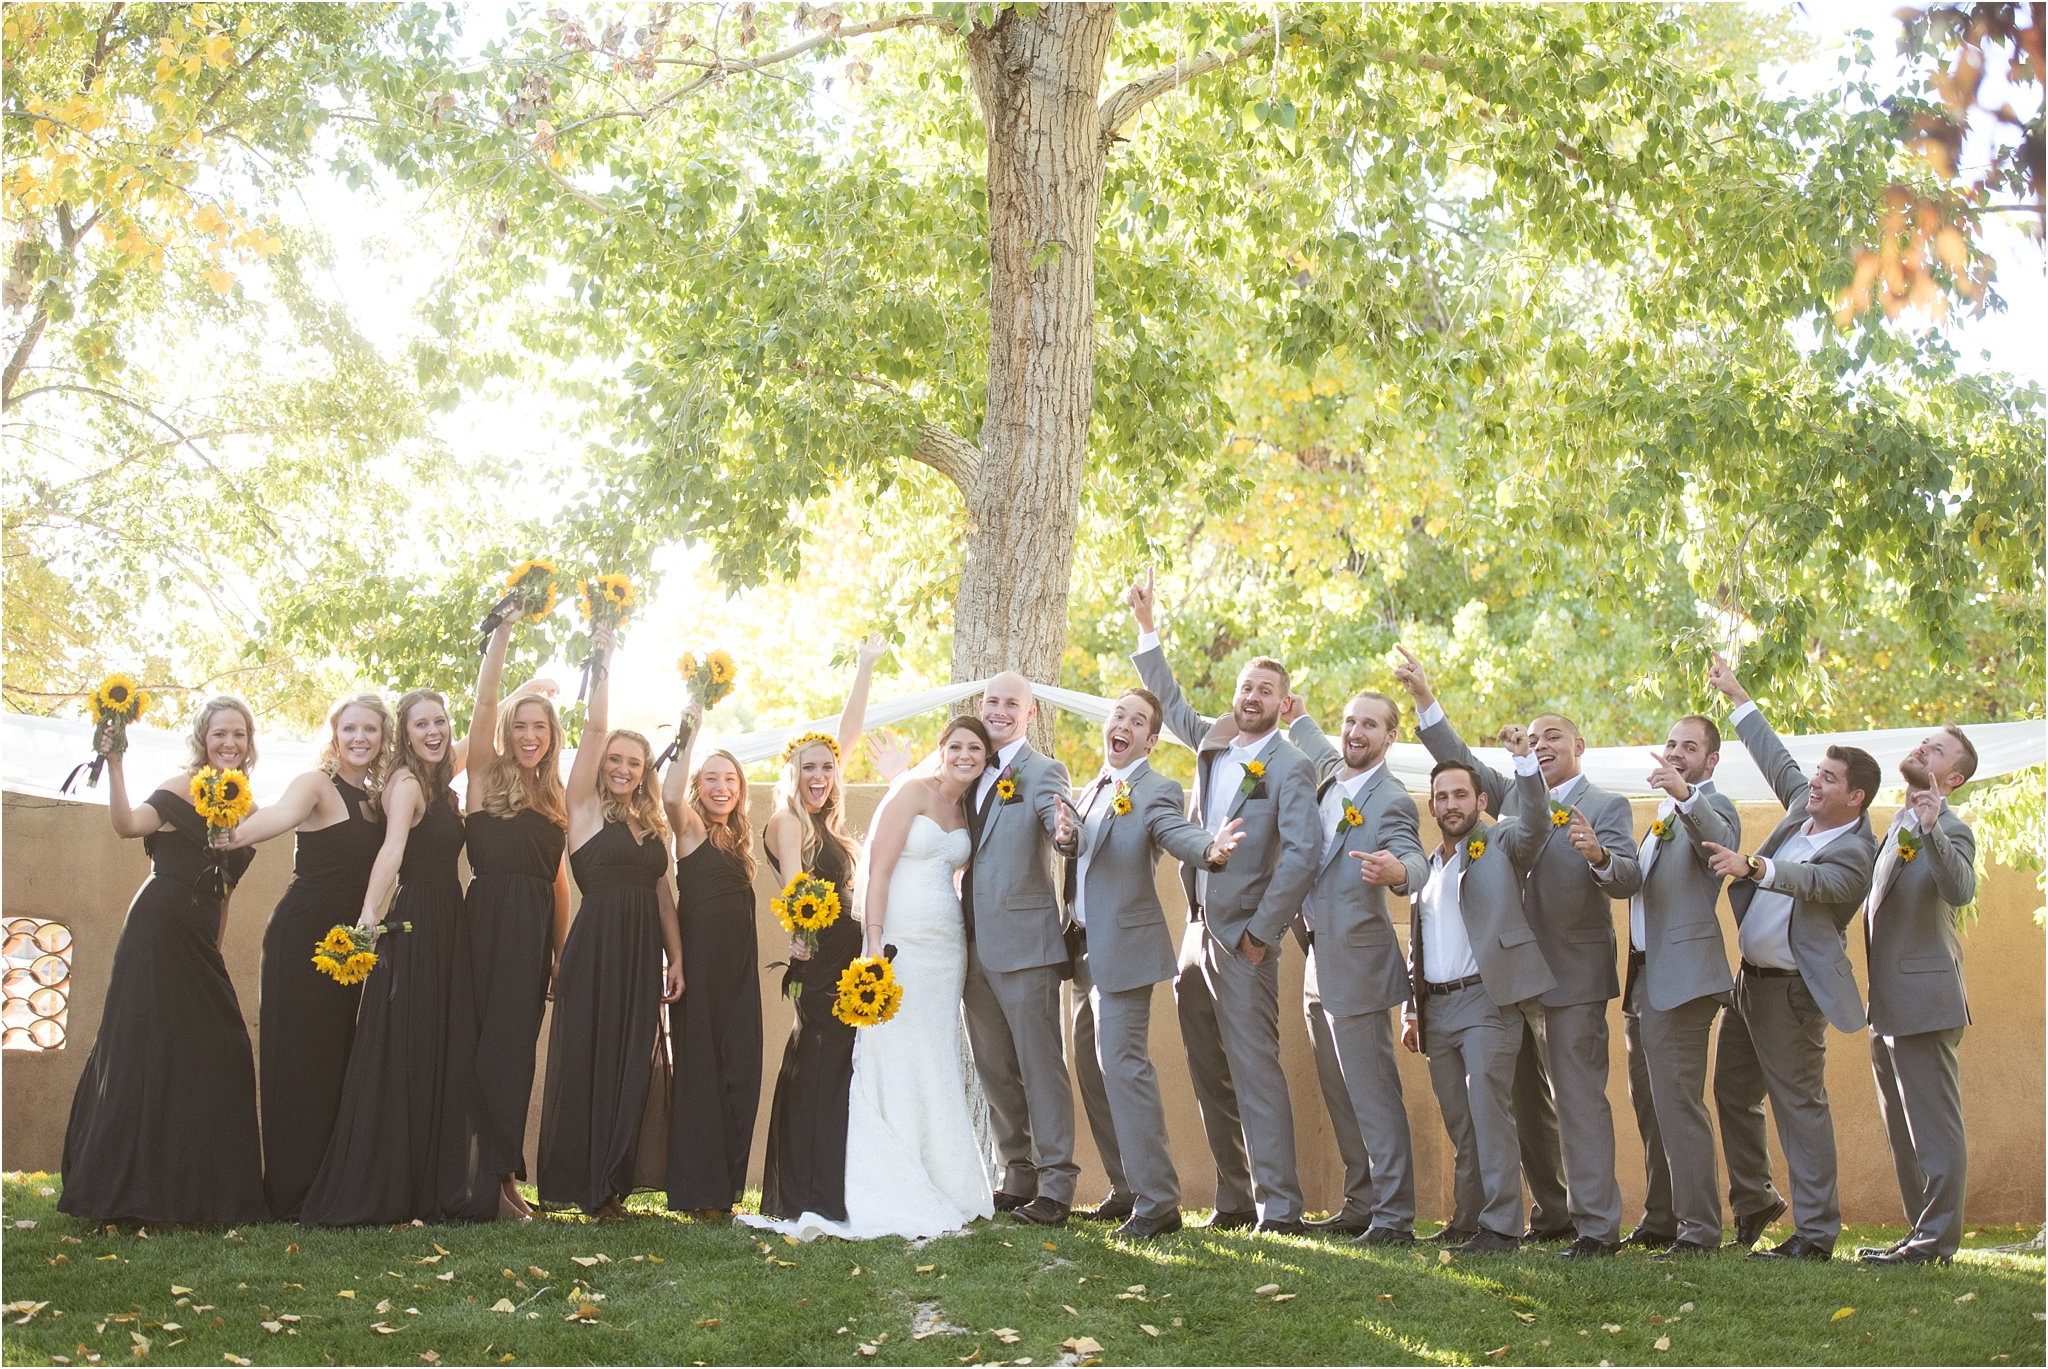 kayla kitts photography - albuquerque wedding photographer - orange september - cjohnson makeup_0051.jpg